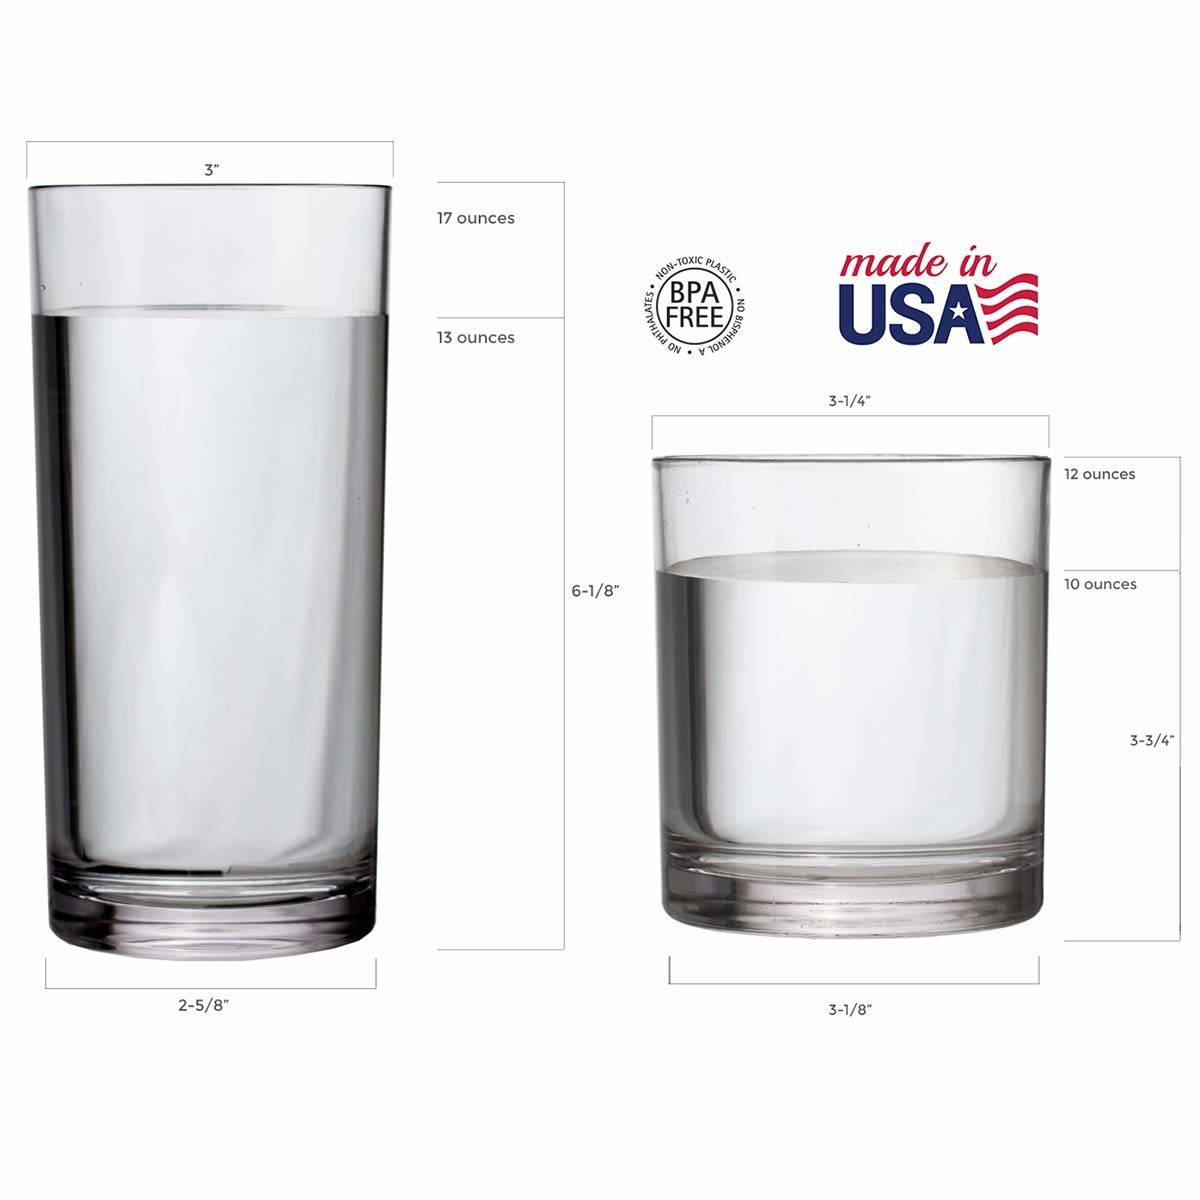 Winning 8 Ounce Glass Gorgeous Means Glasses Water Litres.